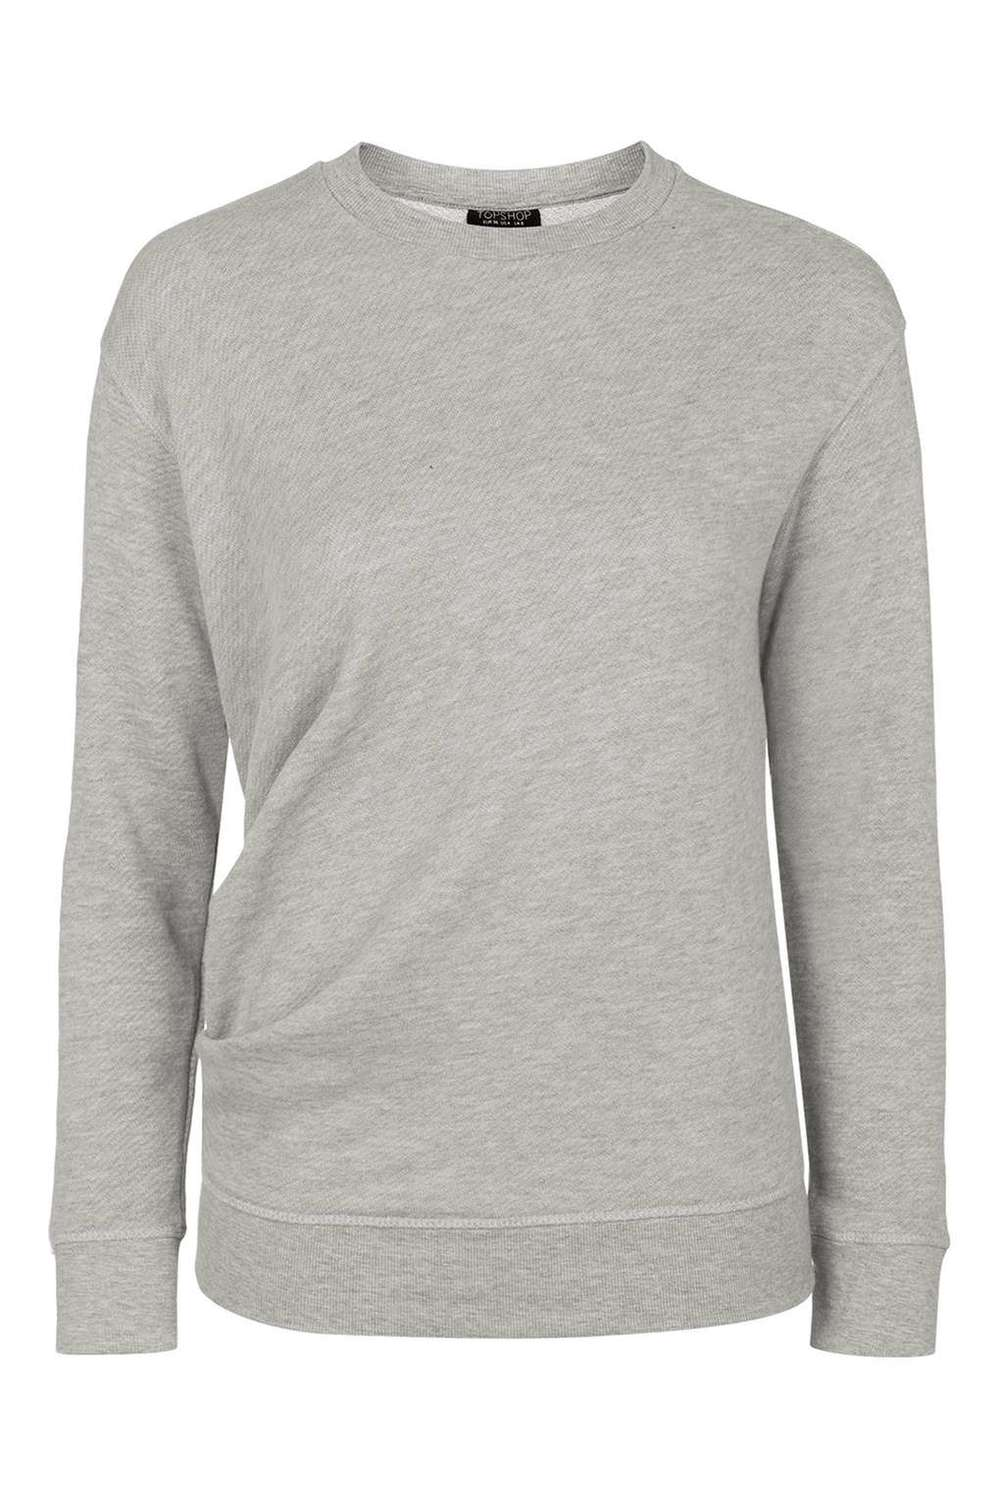 Topshop Basic Sweatshirt